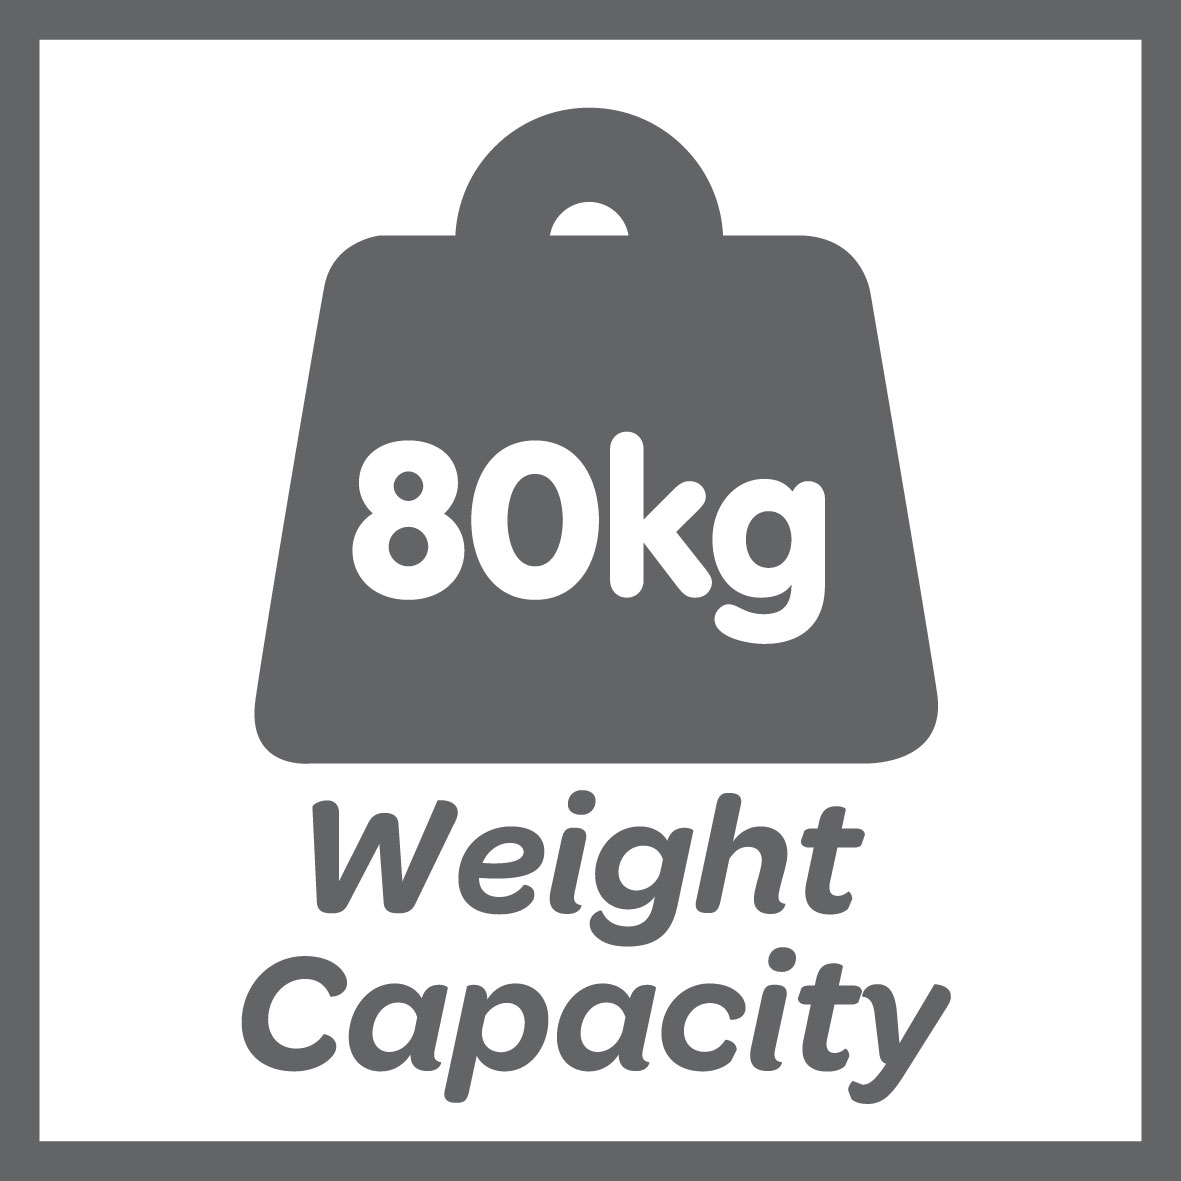 This product has a 80kg weight limit